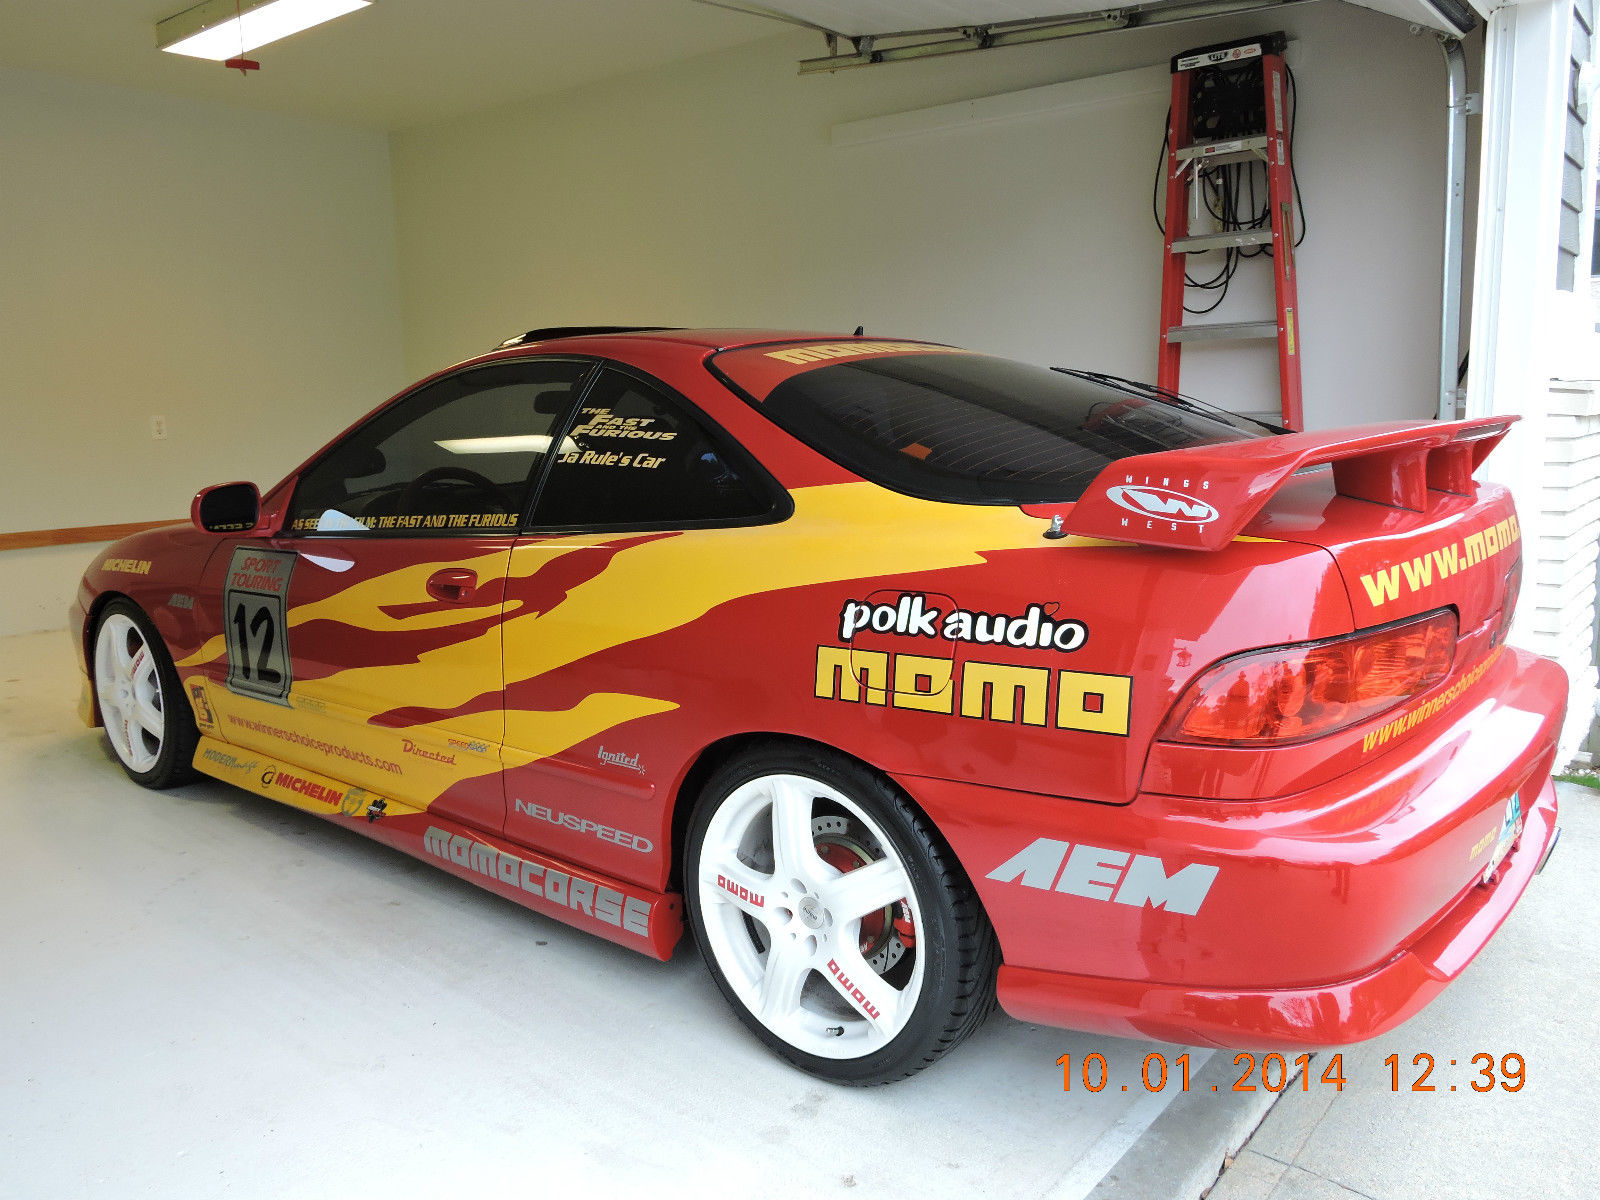 1095195 acura Integra From The Fast And The Furious For Sale On Ebay on 1996 acura integra transmission